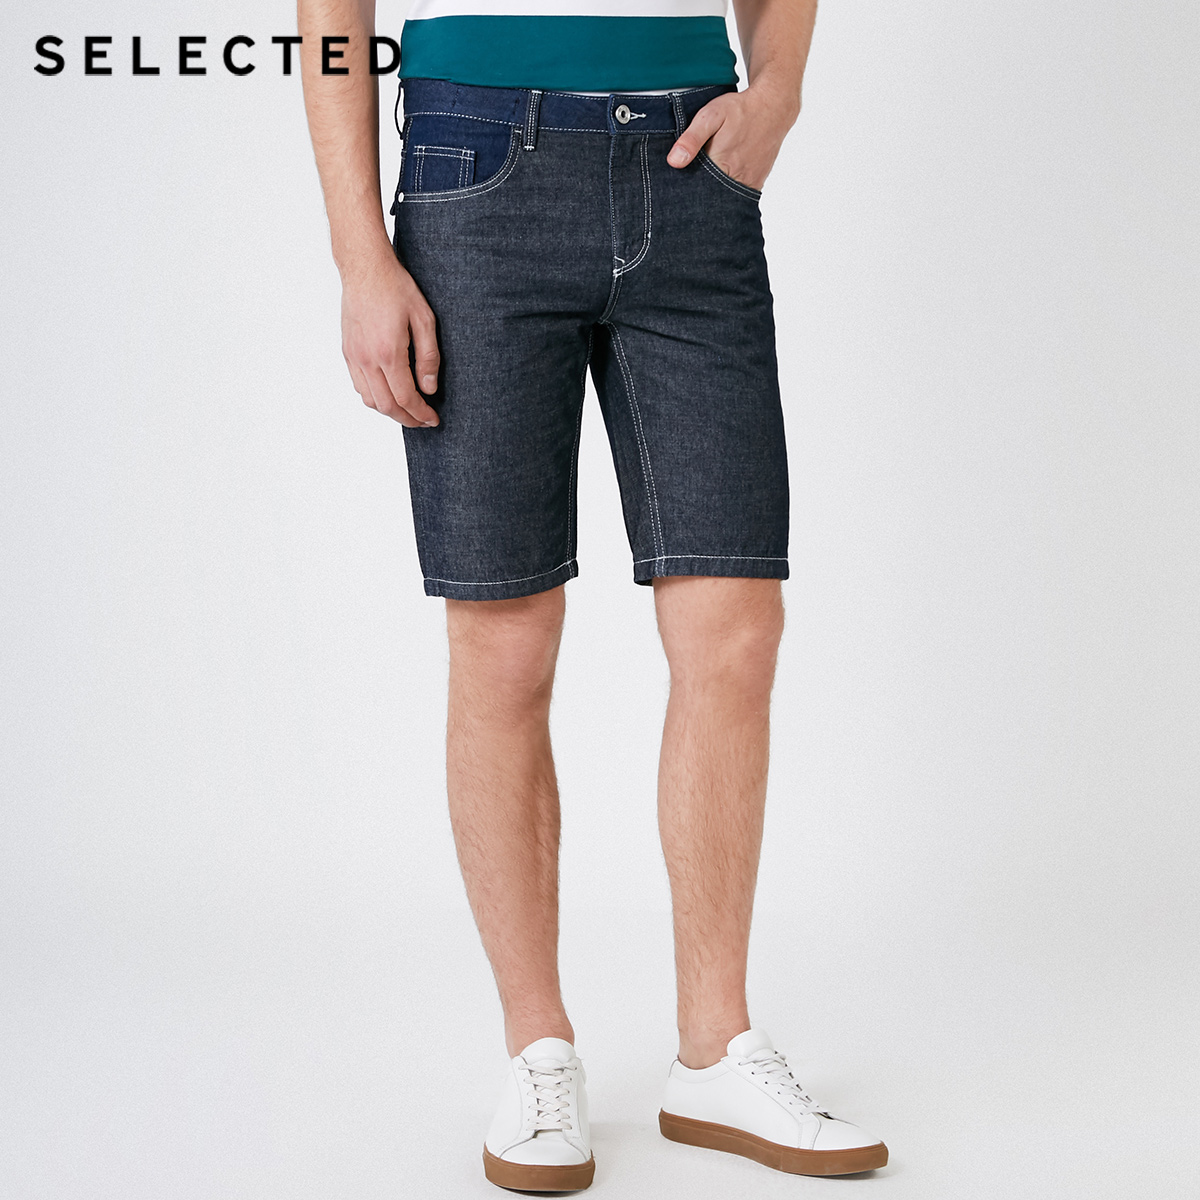 SELECTED Men's Summer Straight Fit Denim Shorts C|4192S3504